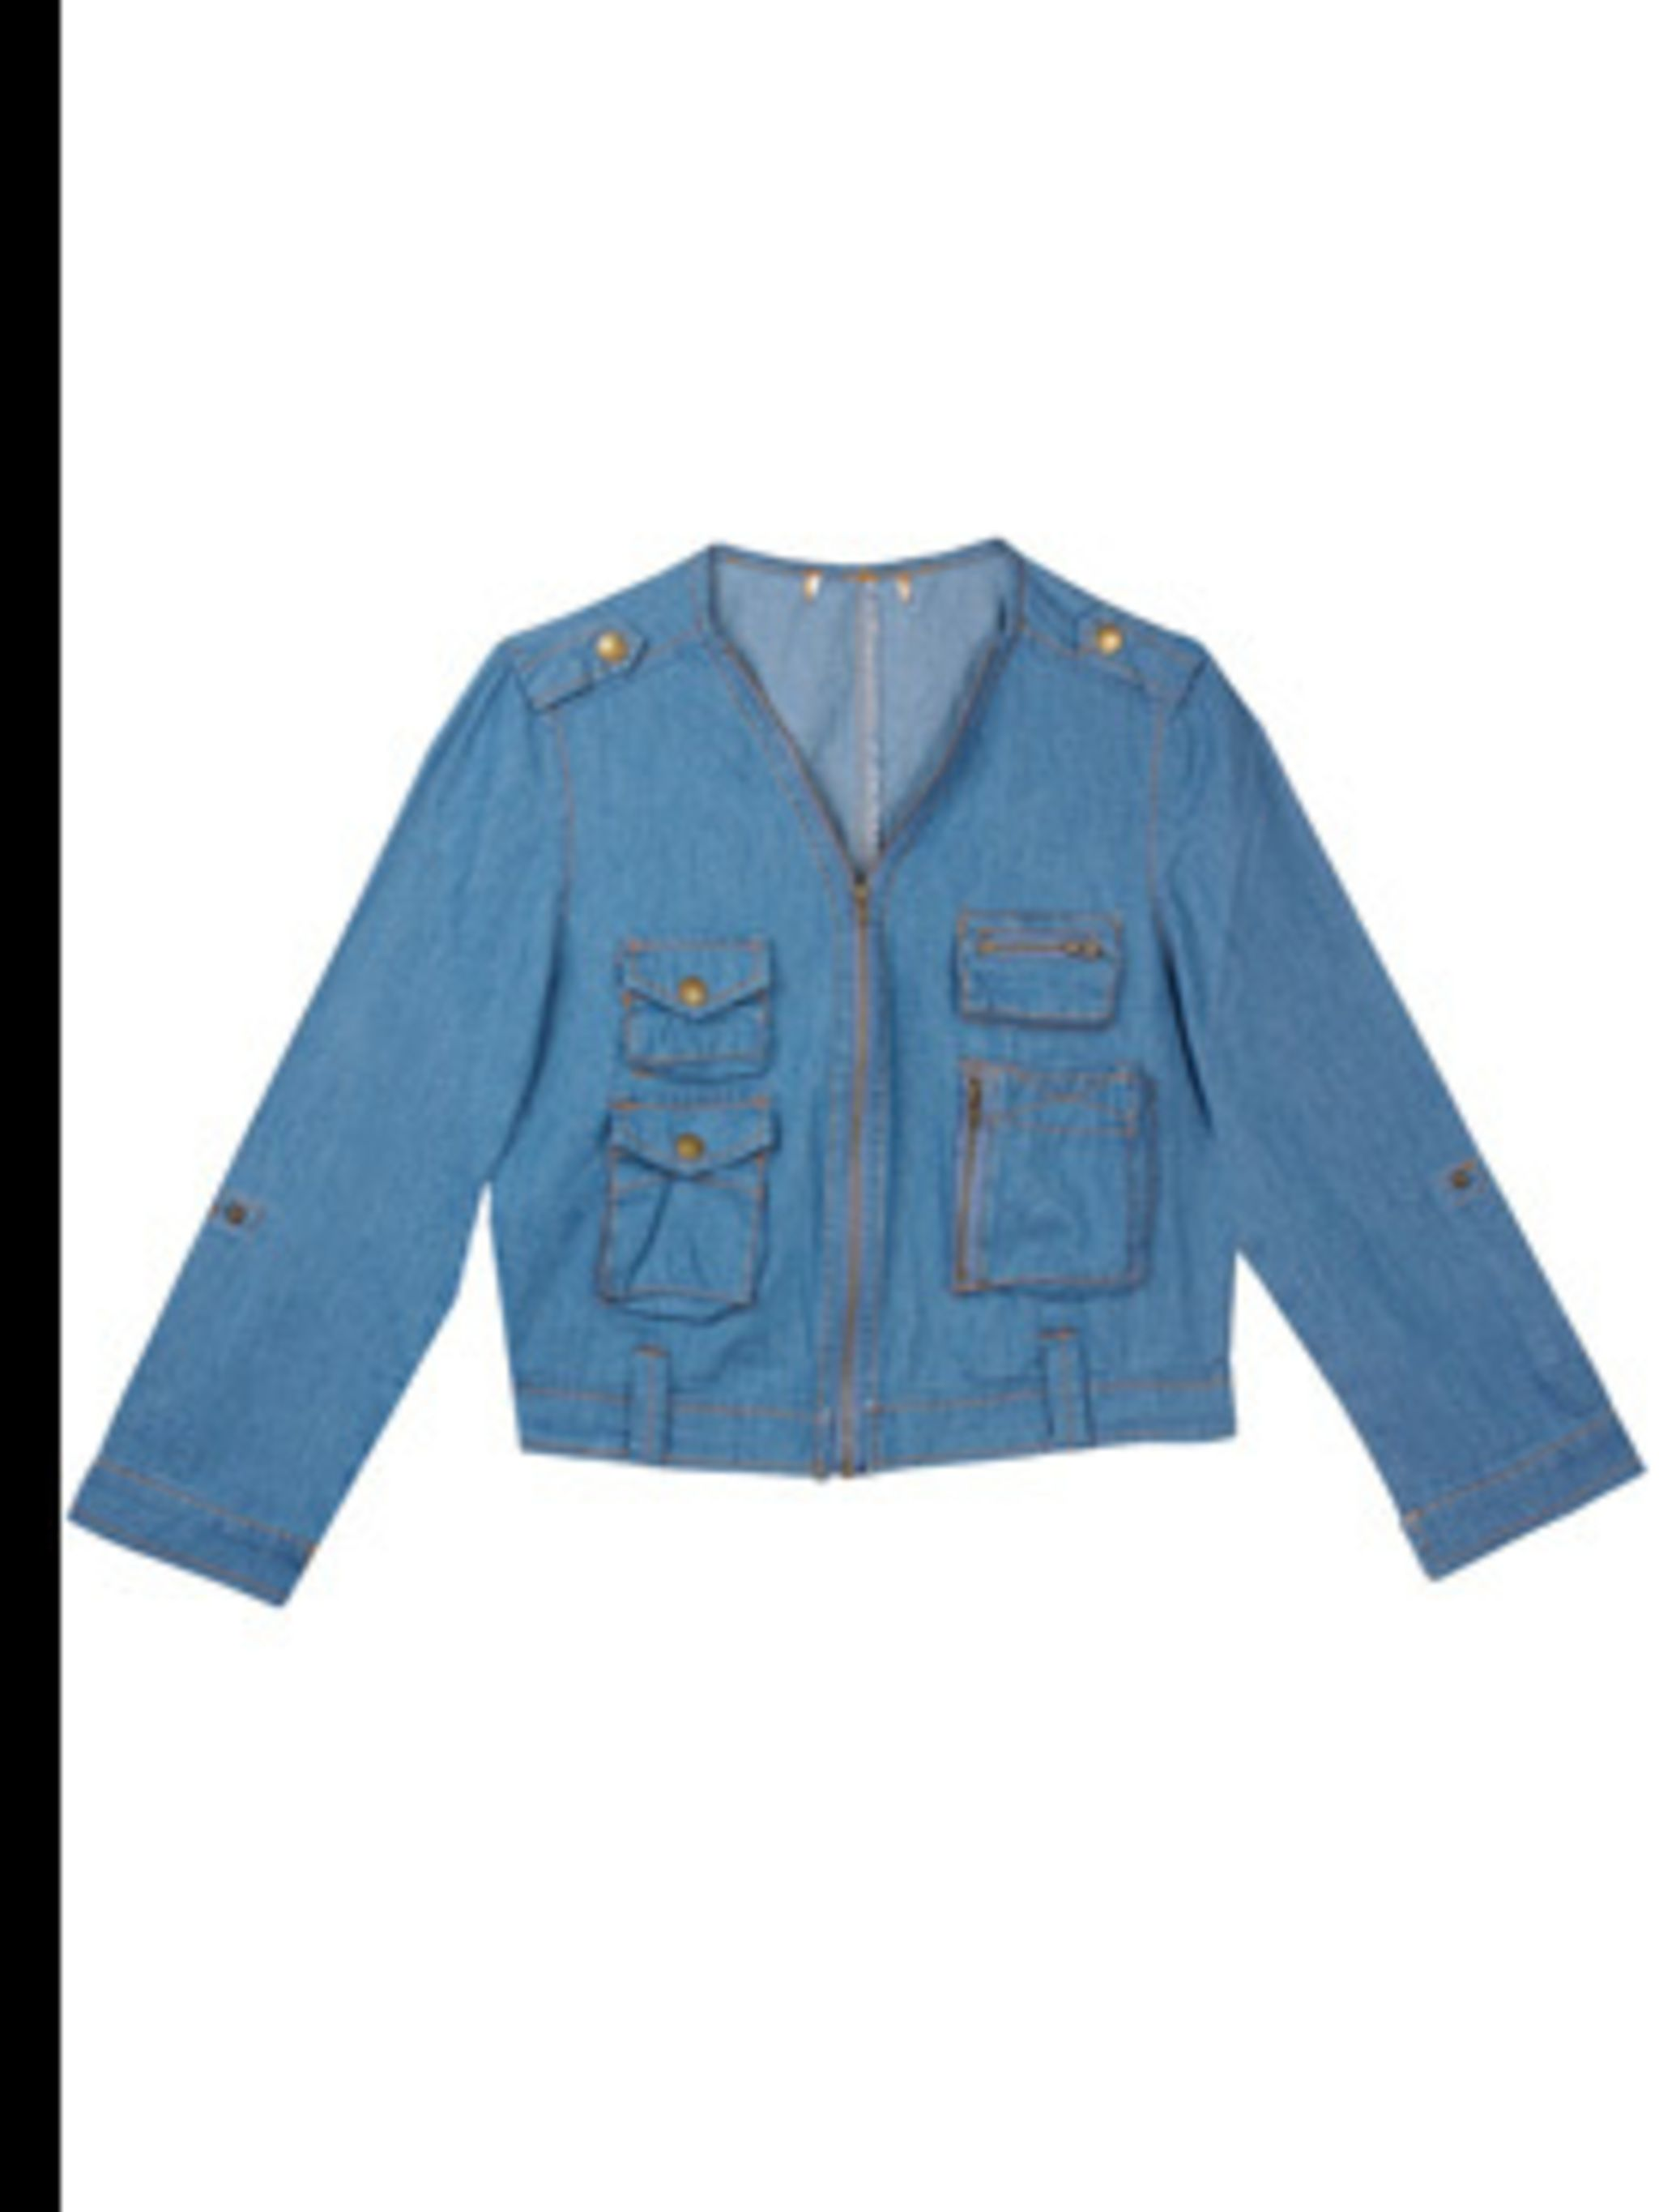 """<p>Jacket, £46 by <a href=""""http://www.urbanoutfitters.co.uk/Shop/Womens/icat/womens"""">Urban Outfitters</a></p>"""